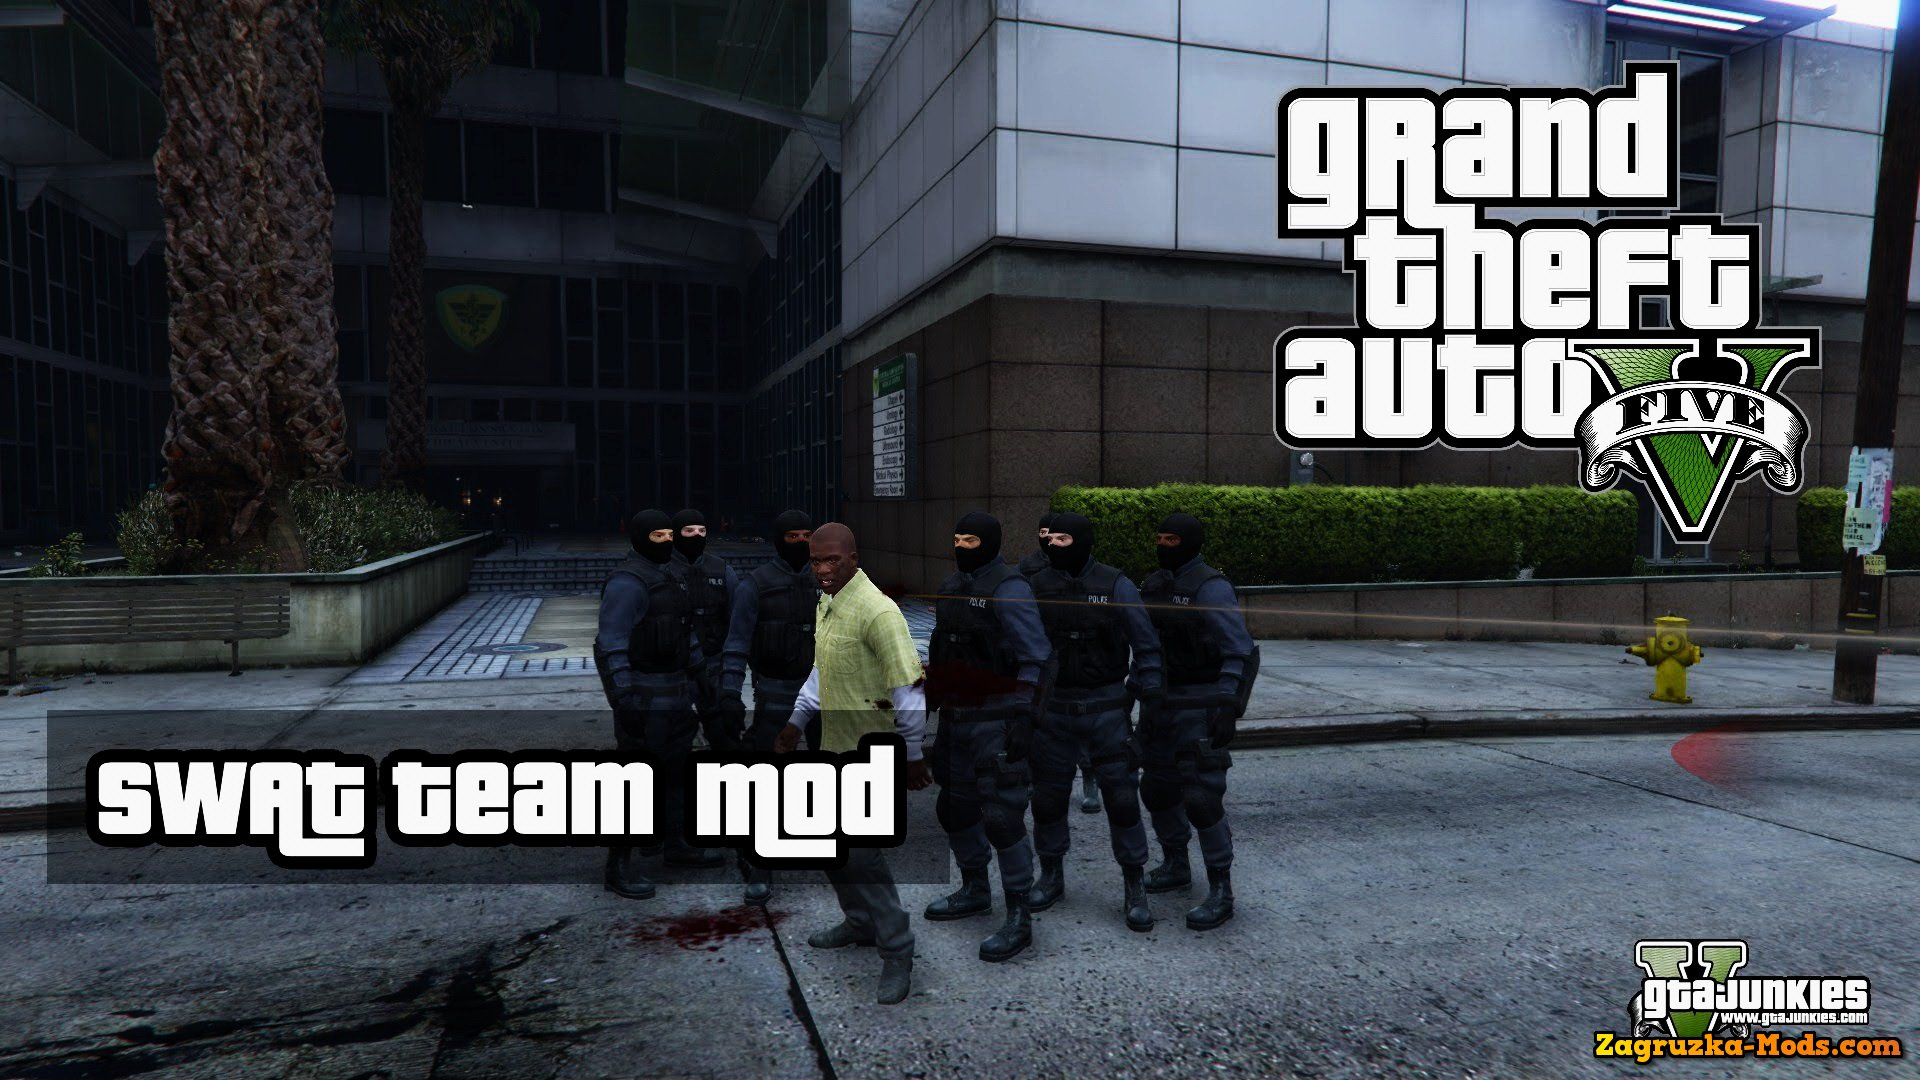 SWAT Team Mod v0.1 for GTA 5